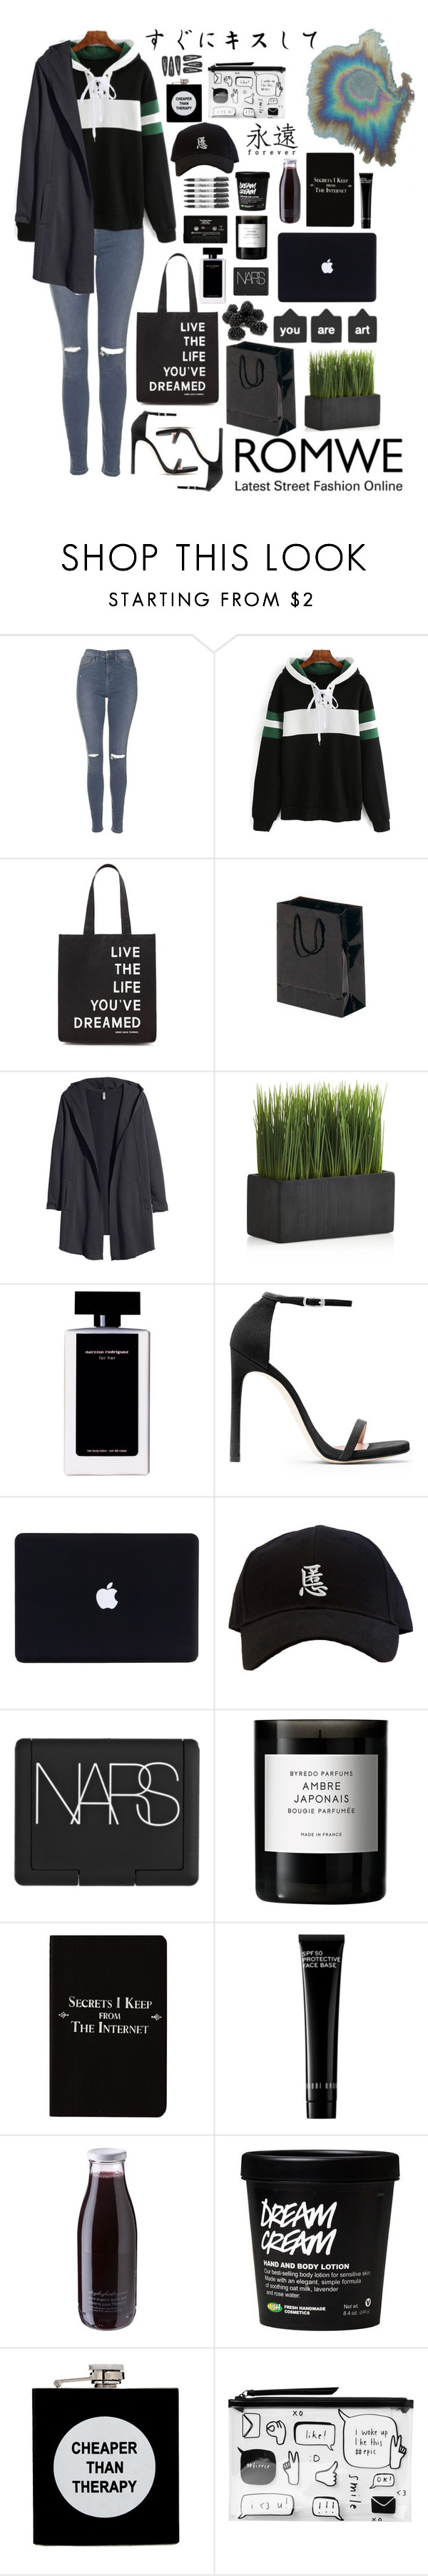 """""""You should wear sweat and heels to break stereotypes / Eyes Shut - Years&Years"""" by pgrndjn ❤ liked on Polyvore featuring Topshop, Forever 21, H&M, Crate and Barrel, Sharpie, Narciso Rodriguez, CASSETTE, Stuart Weitzman, NARS Cosmetics and Byredo"""